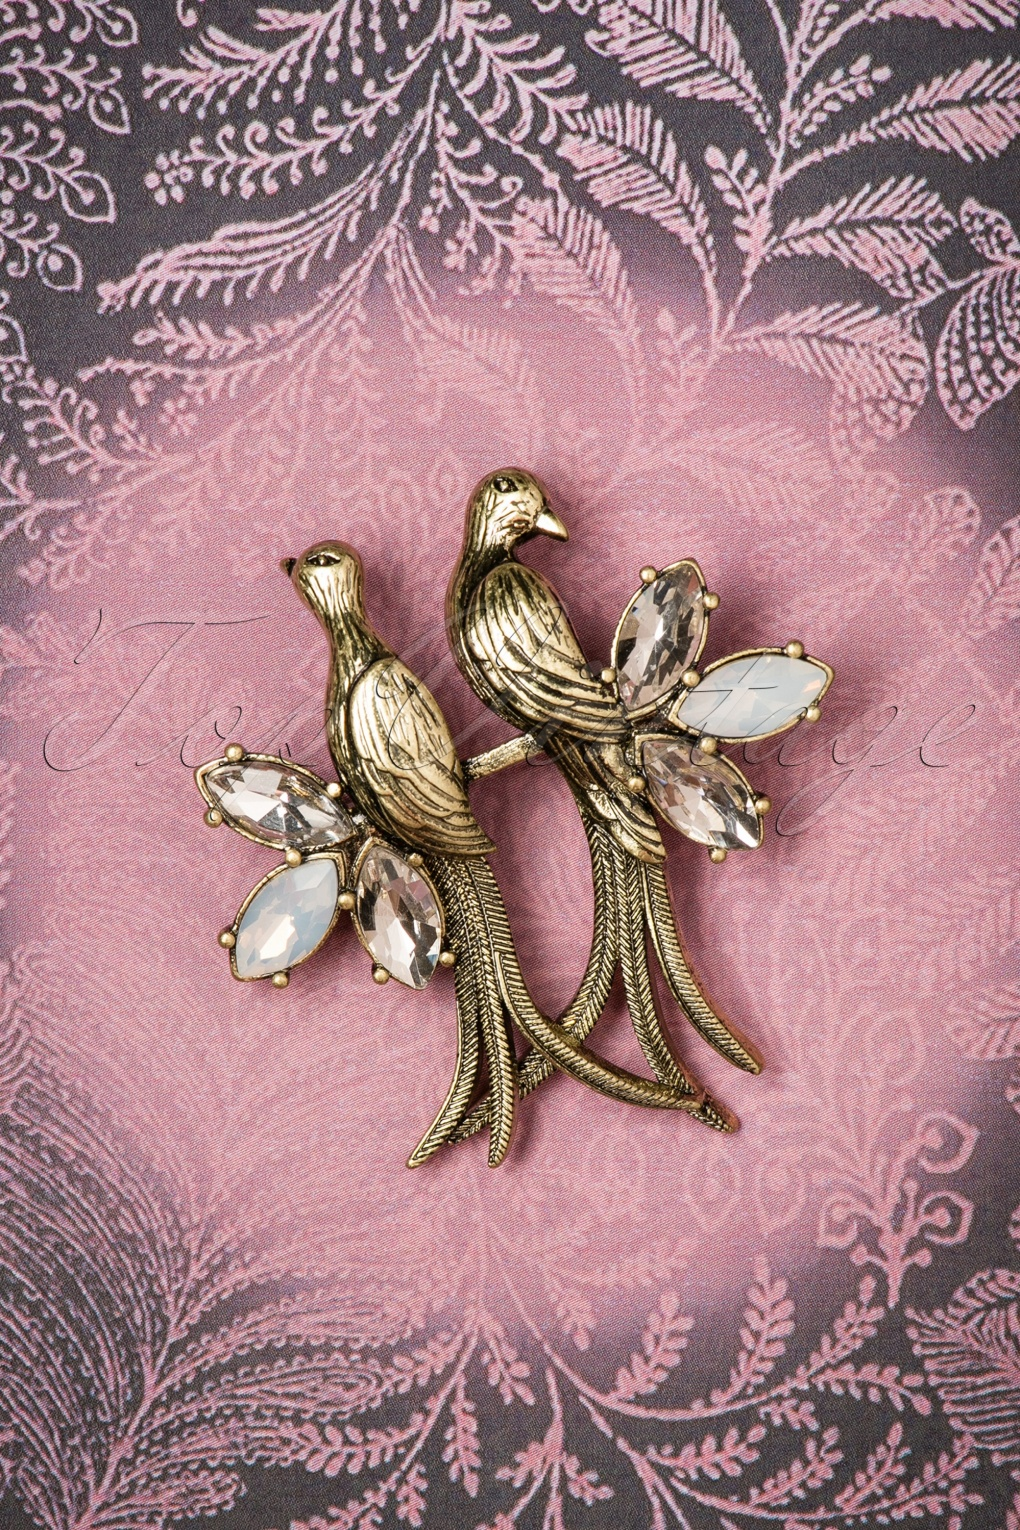 1930s Jewelry | Art Deco Style Jewelry 30s Crystal Love Birds Brooch in Gold £26.32 AT vintagedancer.com